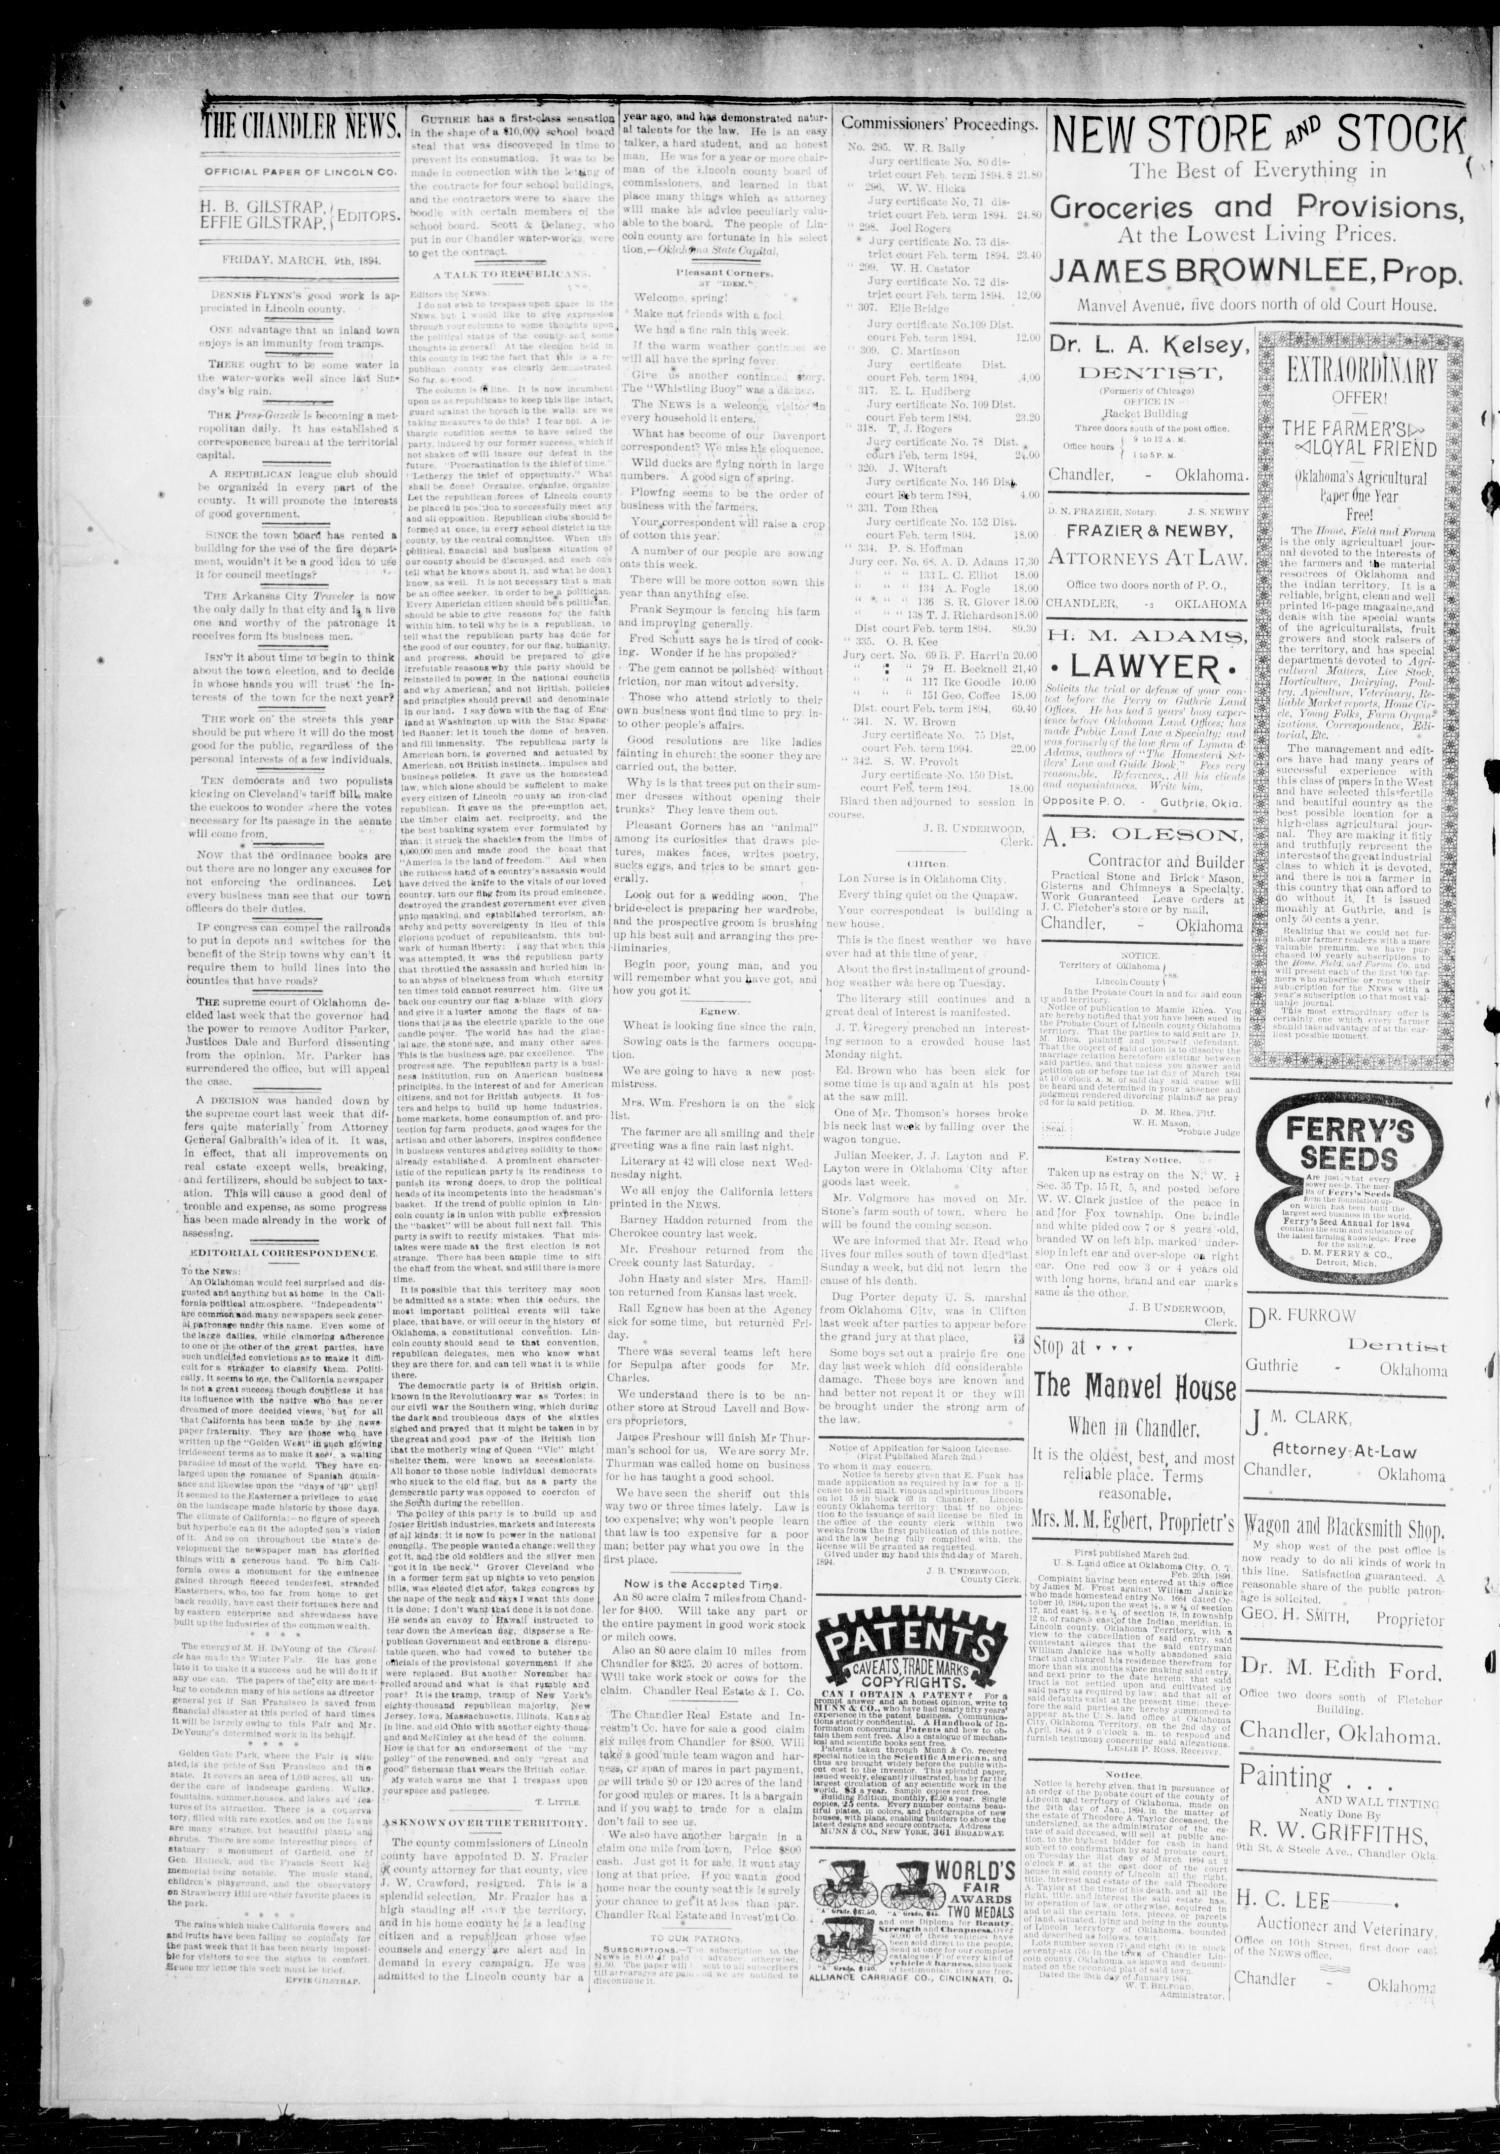 The Chandler News. (Chandler, Okla.), Vol. 3, No. 24, Ed. 1 Friday, March 9, 1894                                                                                                      [Sequence #]: 4 of 8